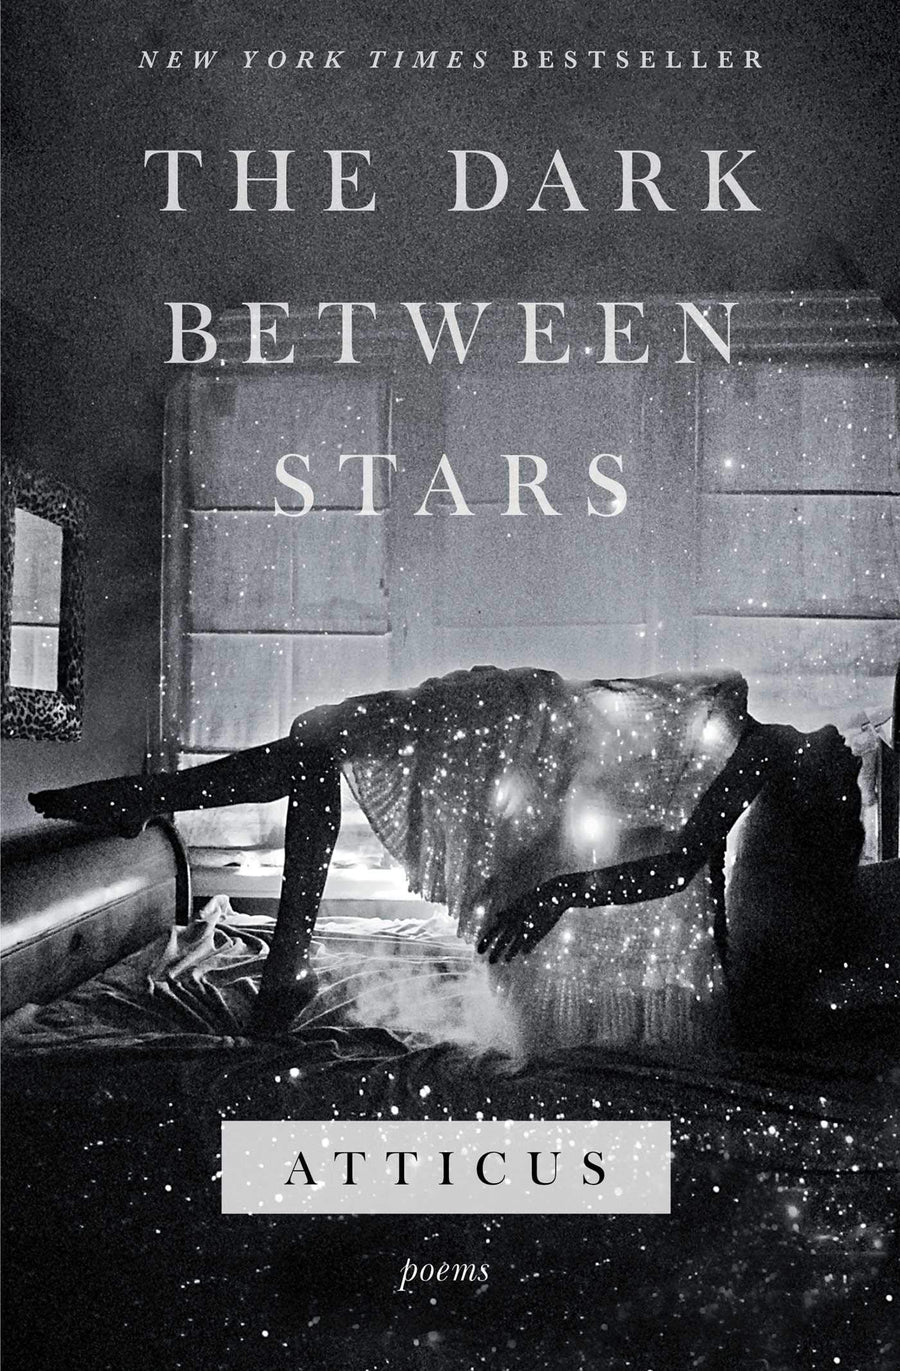 The Dark Between Stars: Poems by Atticus